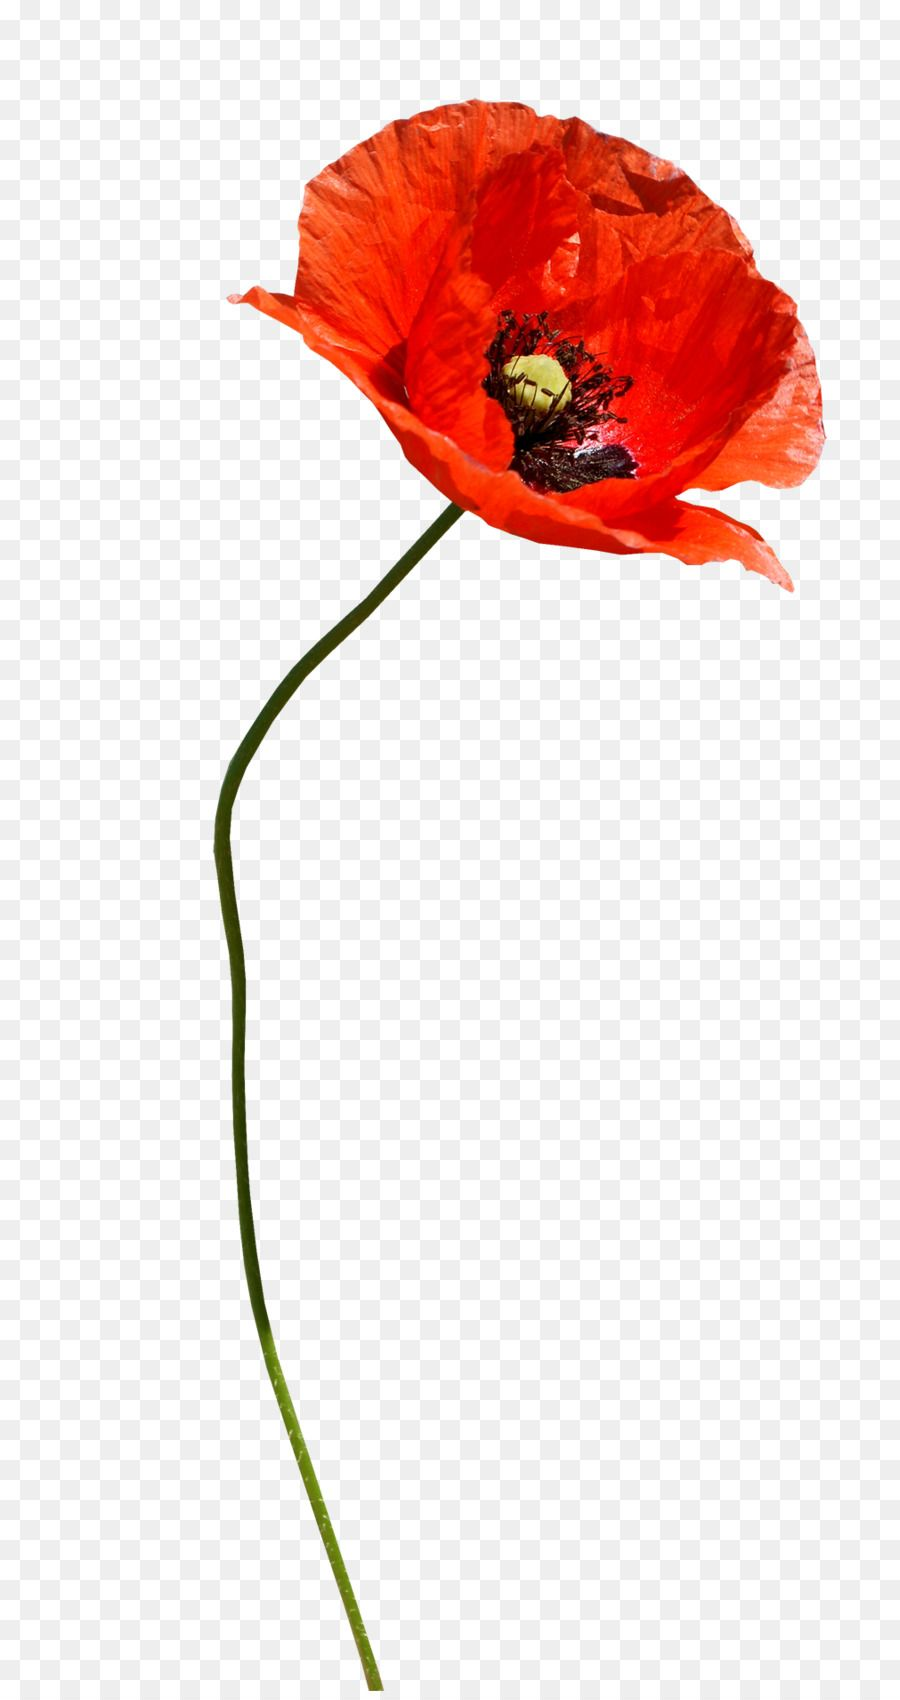 Common Poppy Plant Png Download 1011 1900 Free Transparent Flower Painting Watercolor Flowers Flower Backgrounds